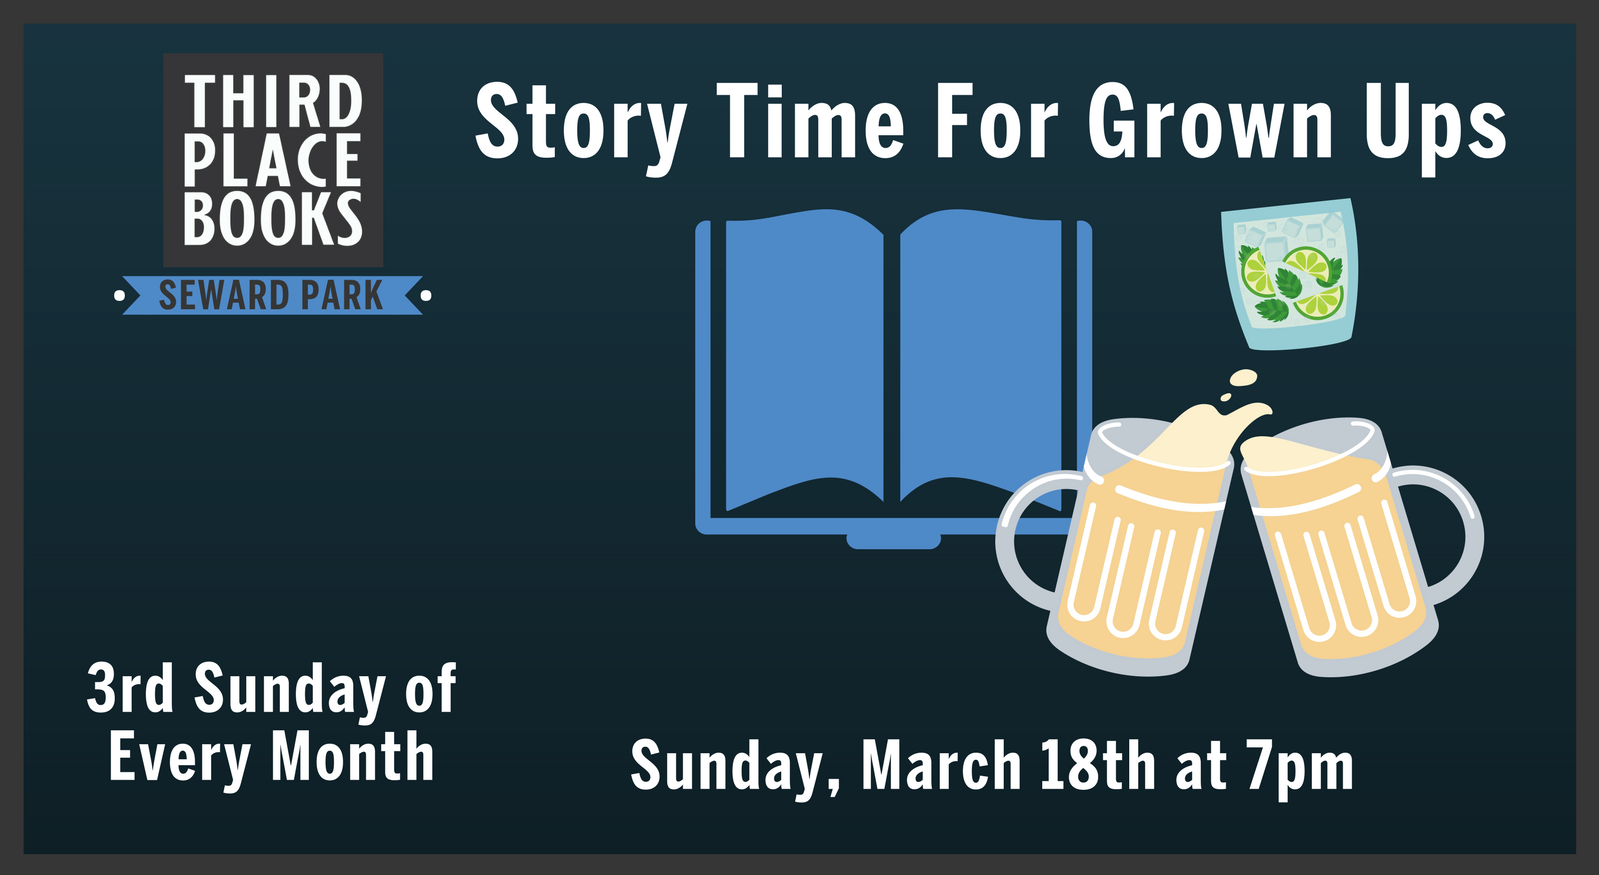 Story Time for Grown Ups! on Sunday, March 18th at 7pm